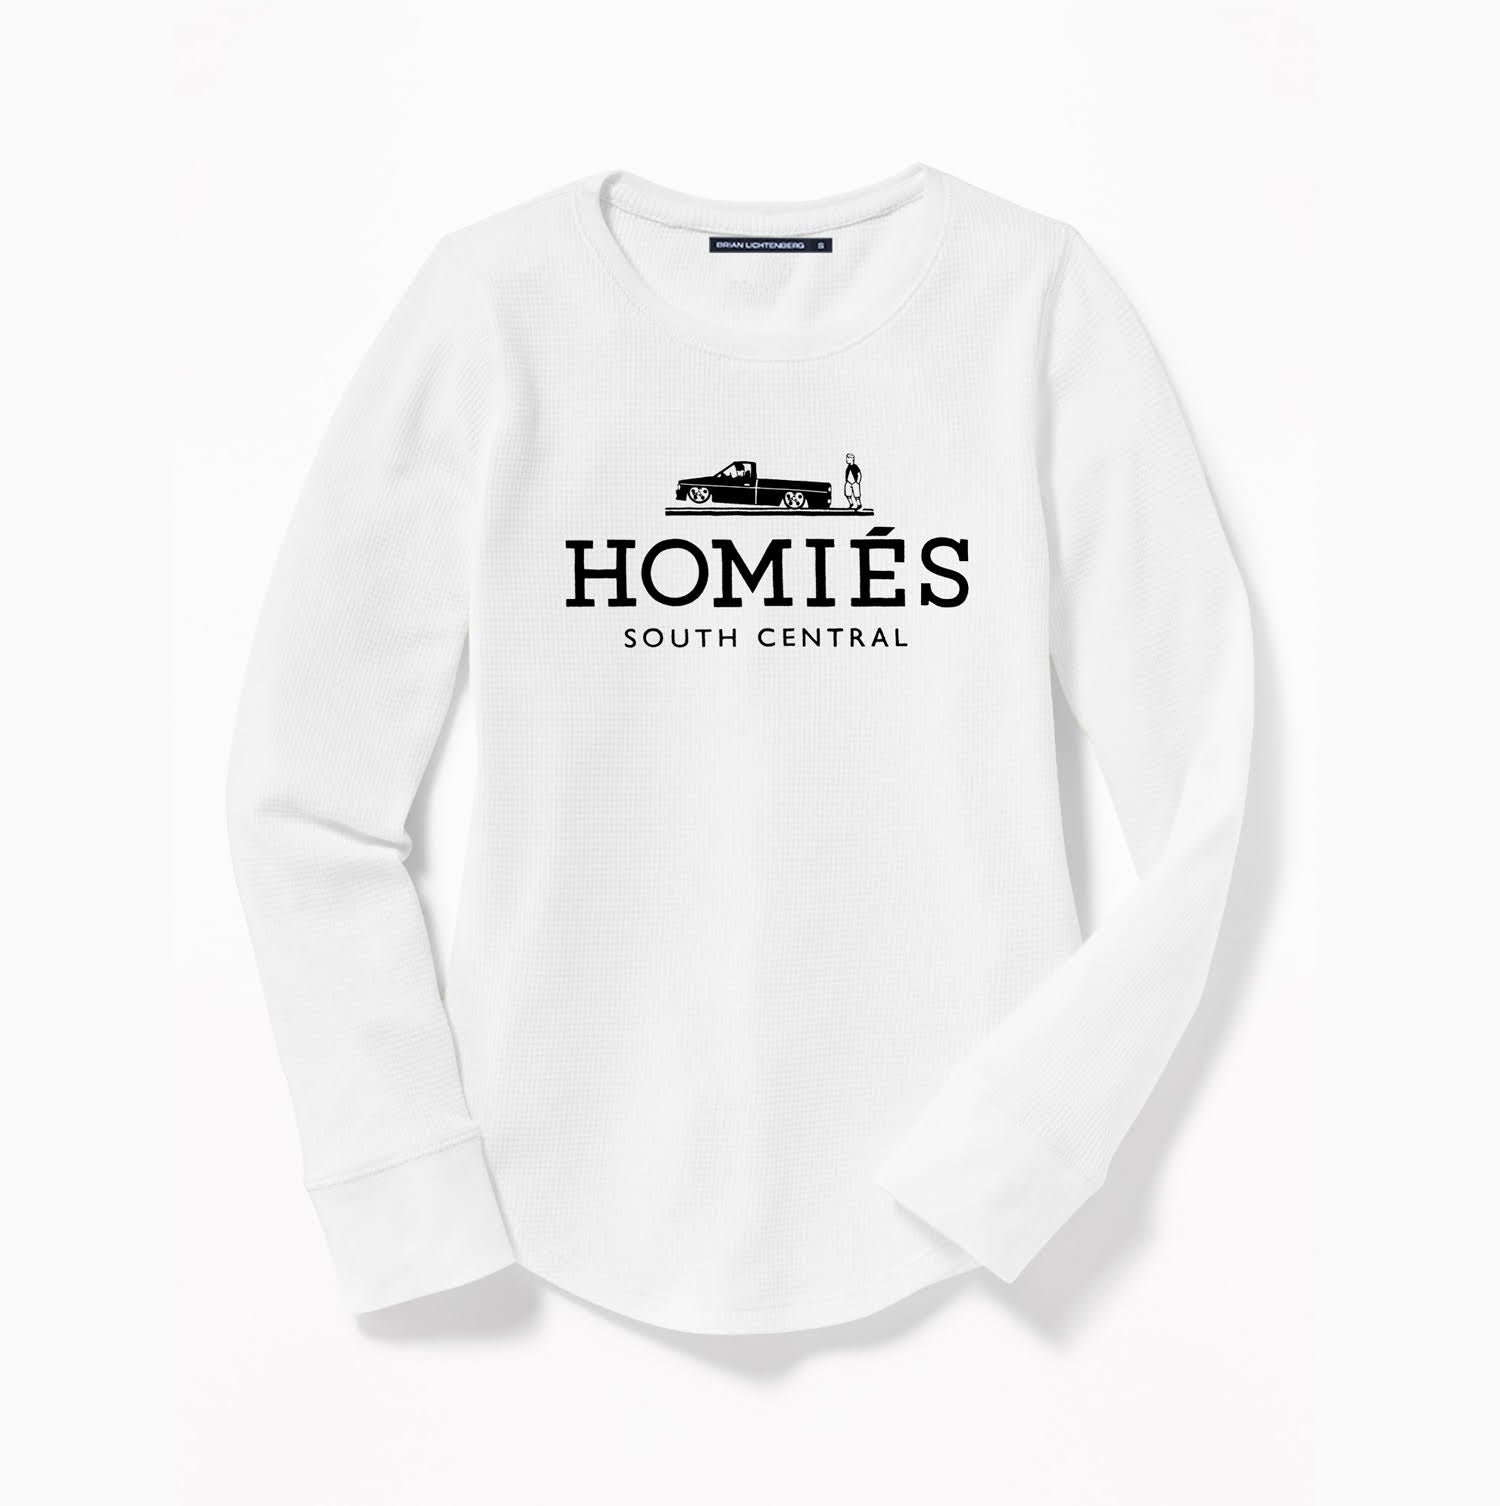 HOMIES WHITE THERMAL